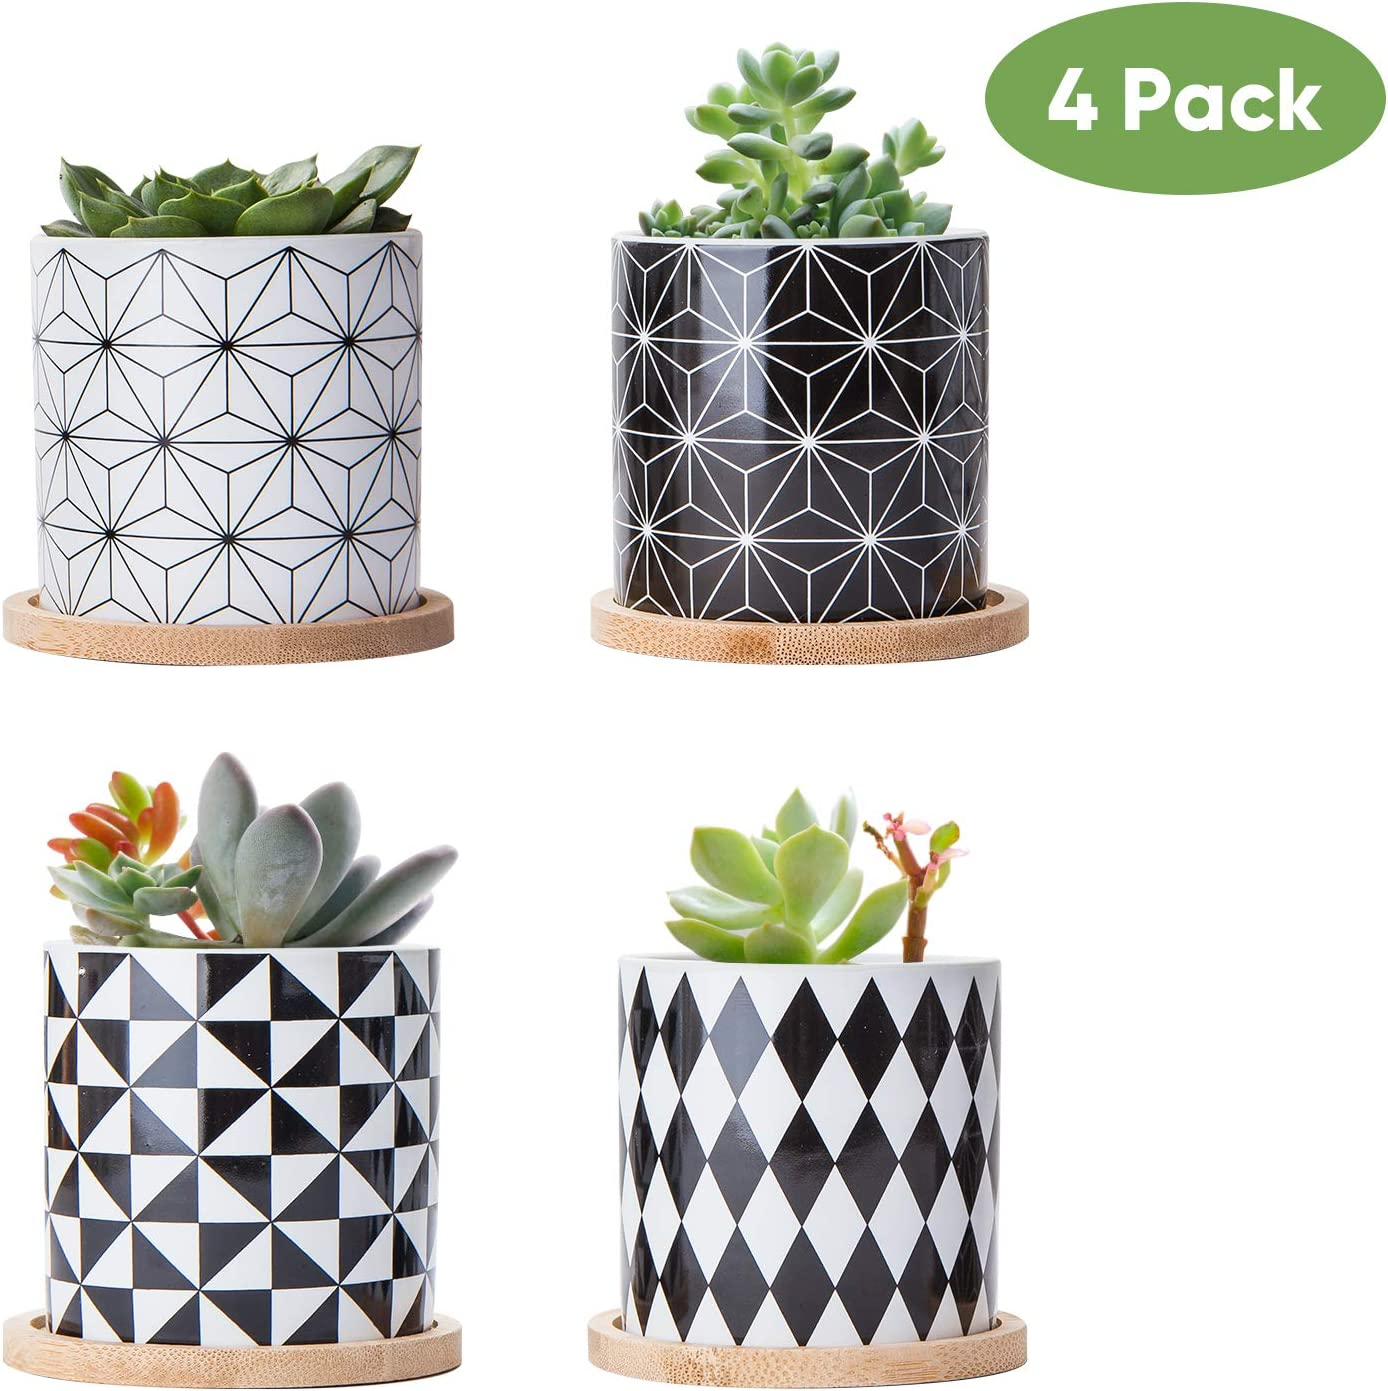 Succulent Plant Pots,Brajttt 3 Inch Cylindrical Ceramic Planter for Cactus,Succulent Planting,with Bamboo Trays,Pack of 4